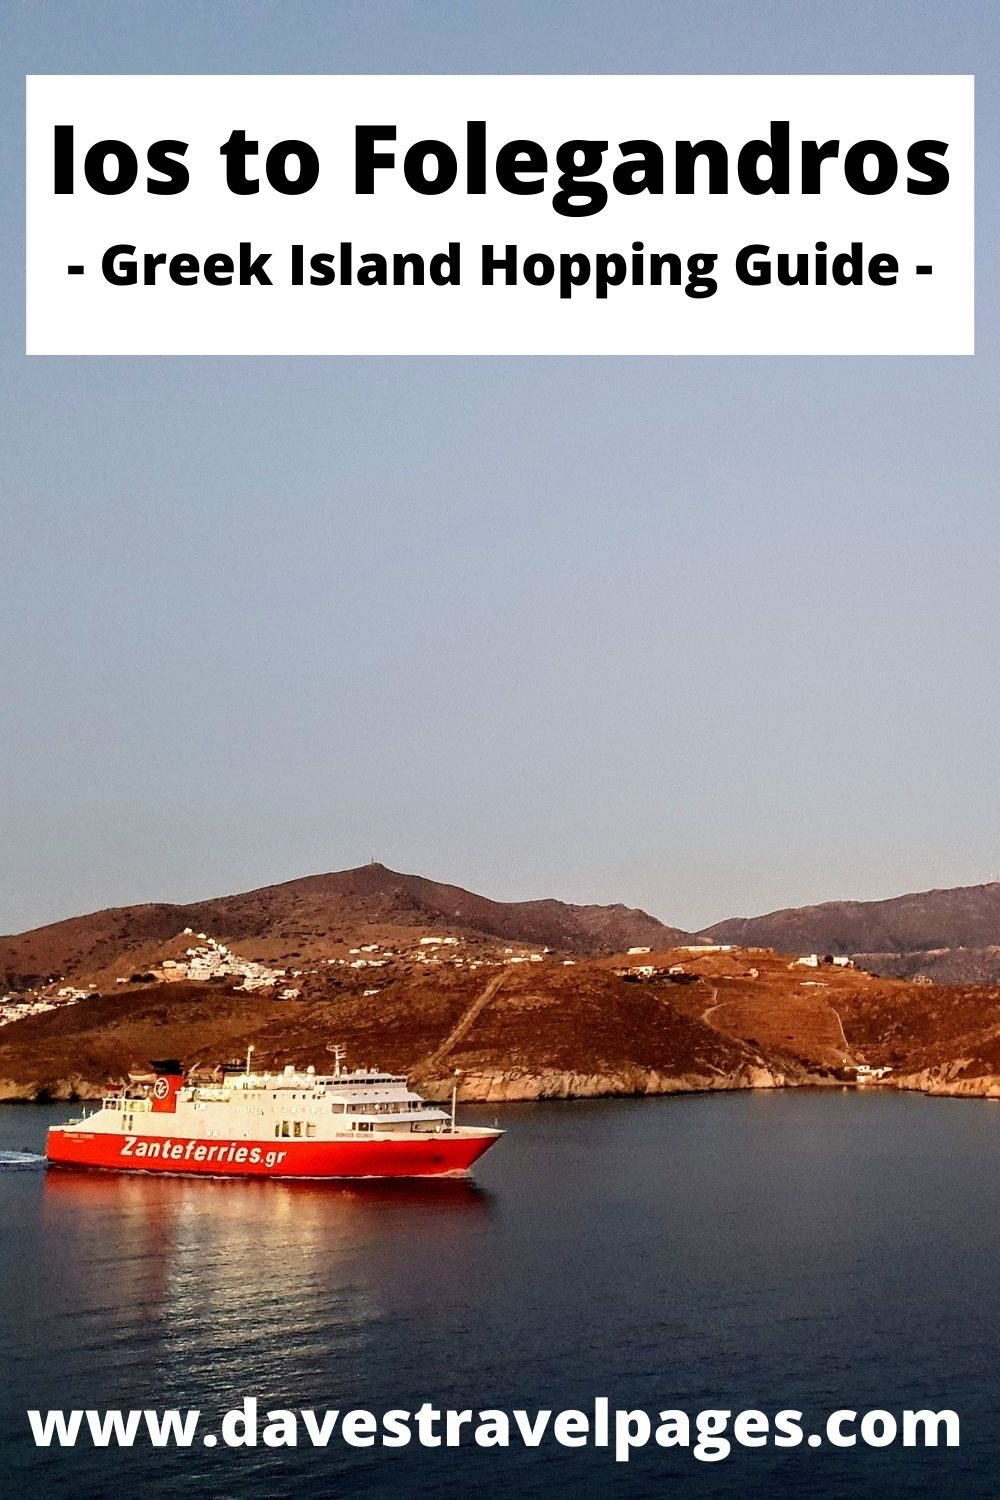 How to travel from Ios to Folegandros by ferry